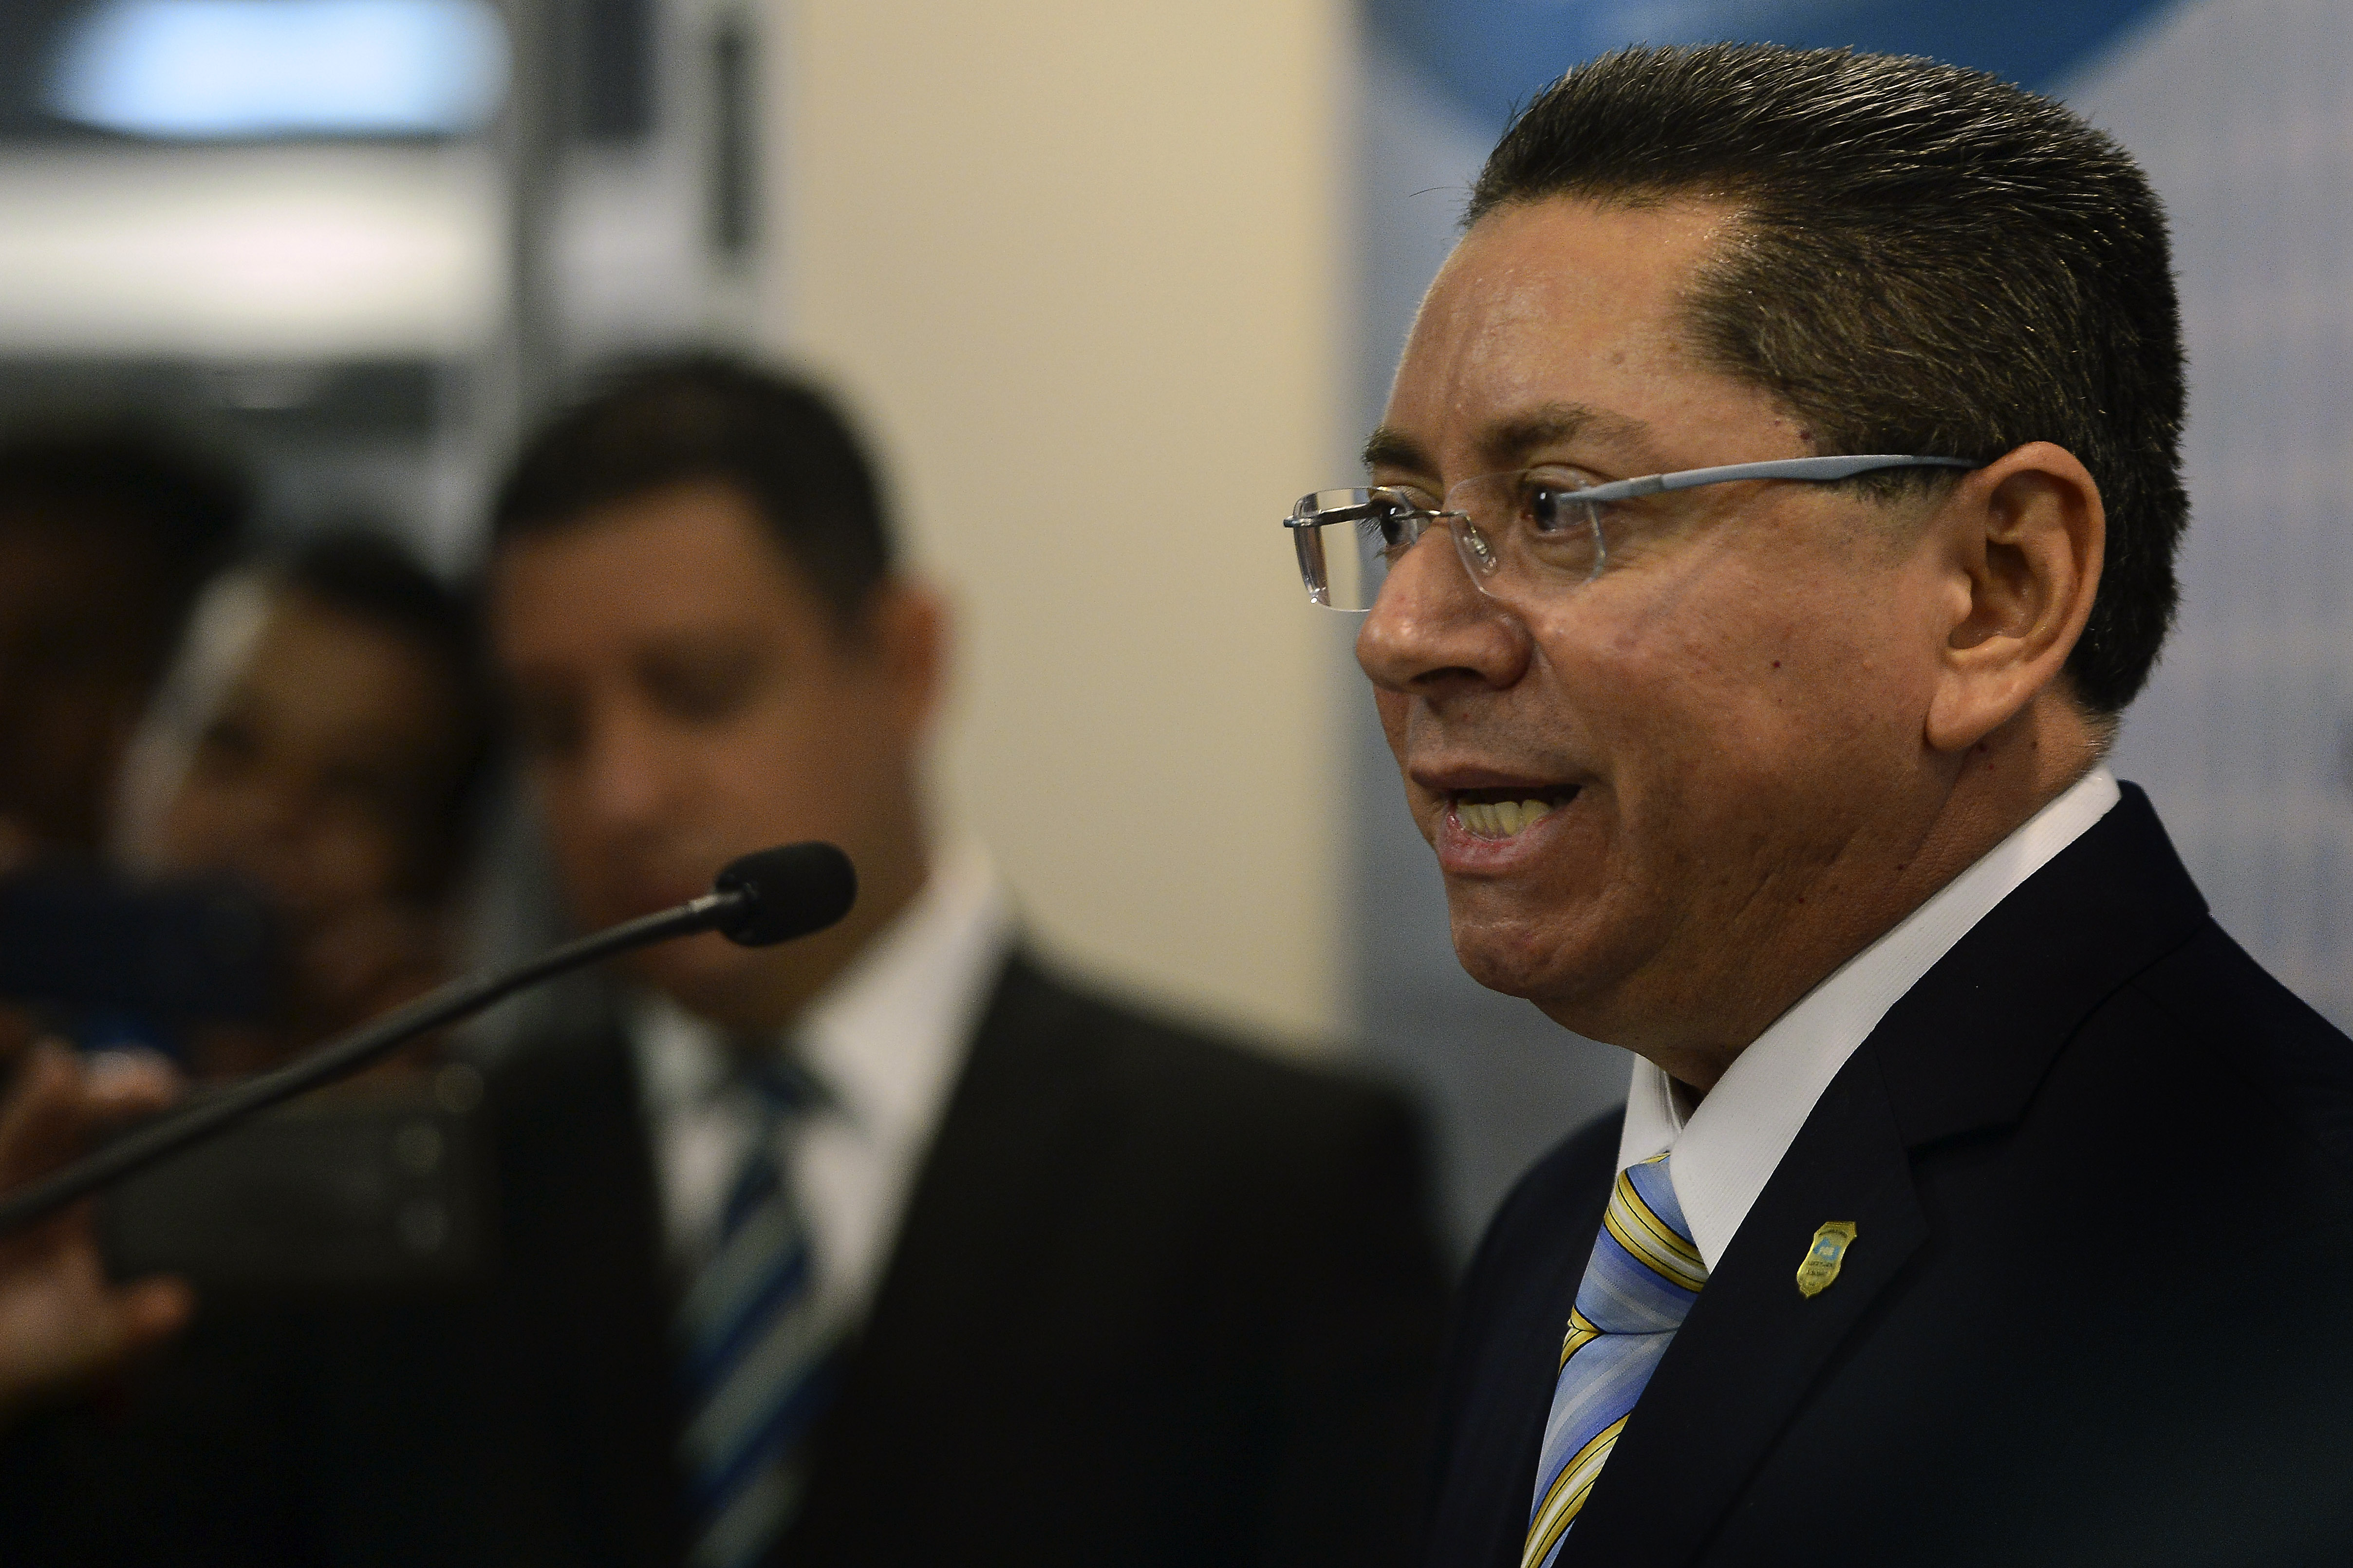 The new Prosecutor General of El Salvador, Douglas Arquimedes Melendez speaks during a press conference in San Salvador, on January 6, 2016. Melendez takes over as prosecutor general amid a social crisis provoked by an alarming increase in the number of murders, and which places Salvador as one of the most violent countries in Latin America.   AFP PHOTO / Marvin RECINOS / AFP / Marvin RECINOS        (Photo credit should read MARVIN RECINOS/AFP/Getty Images)